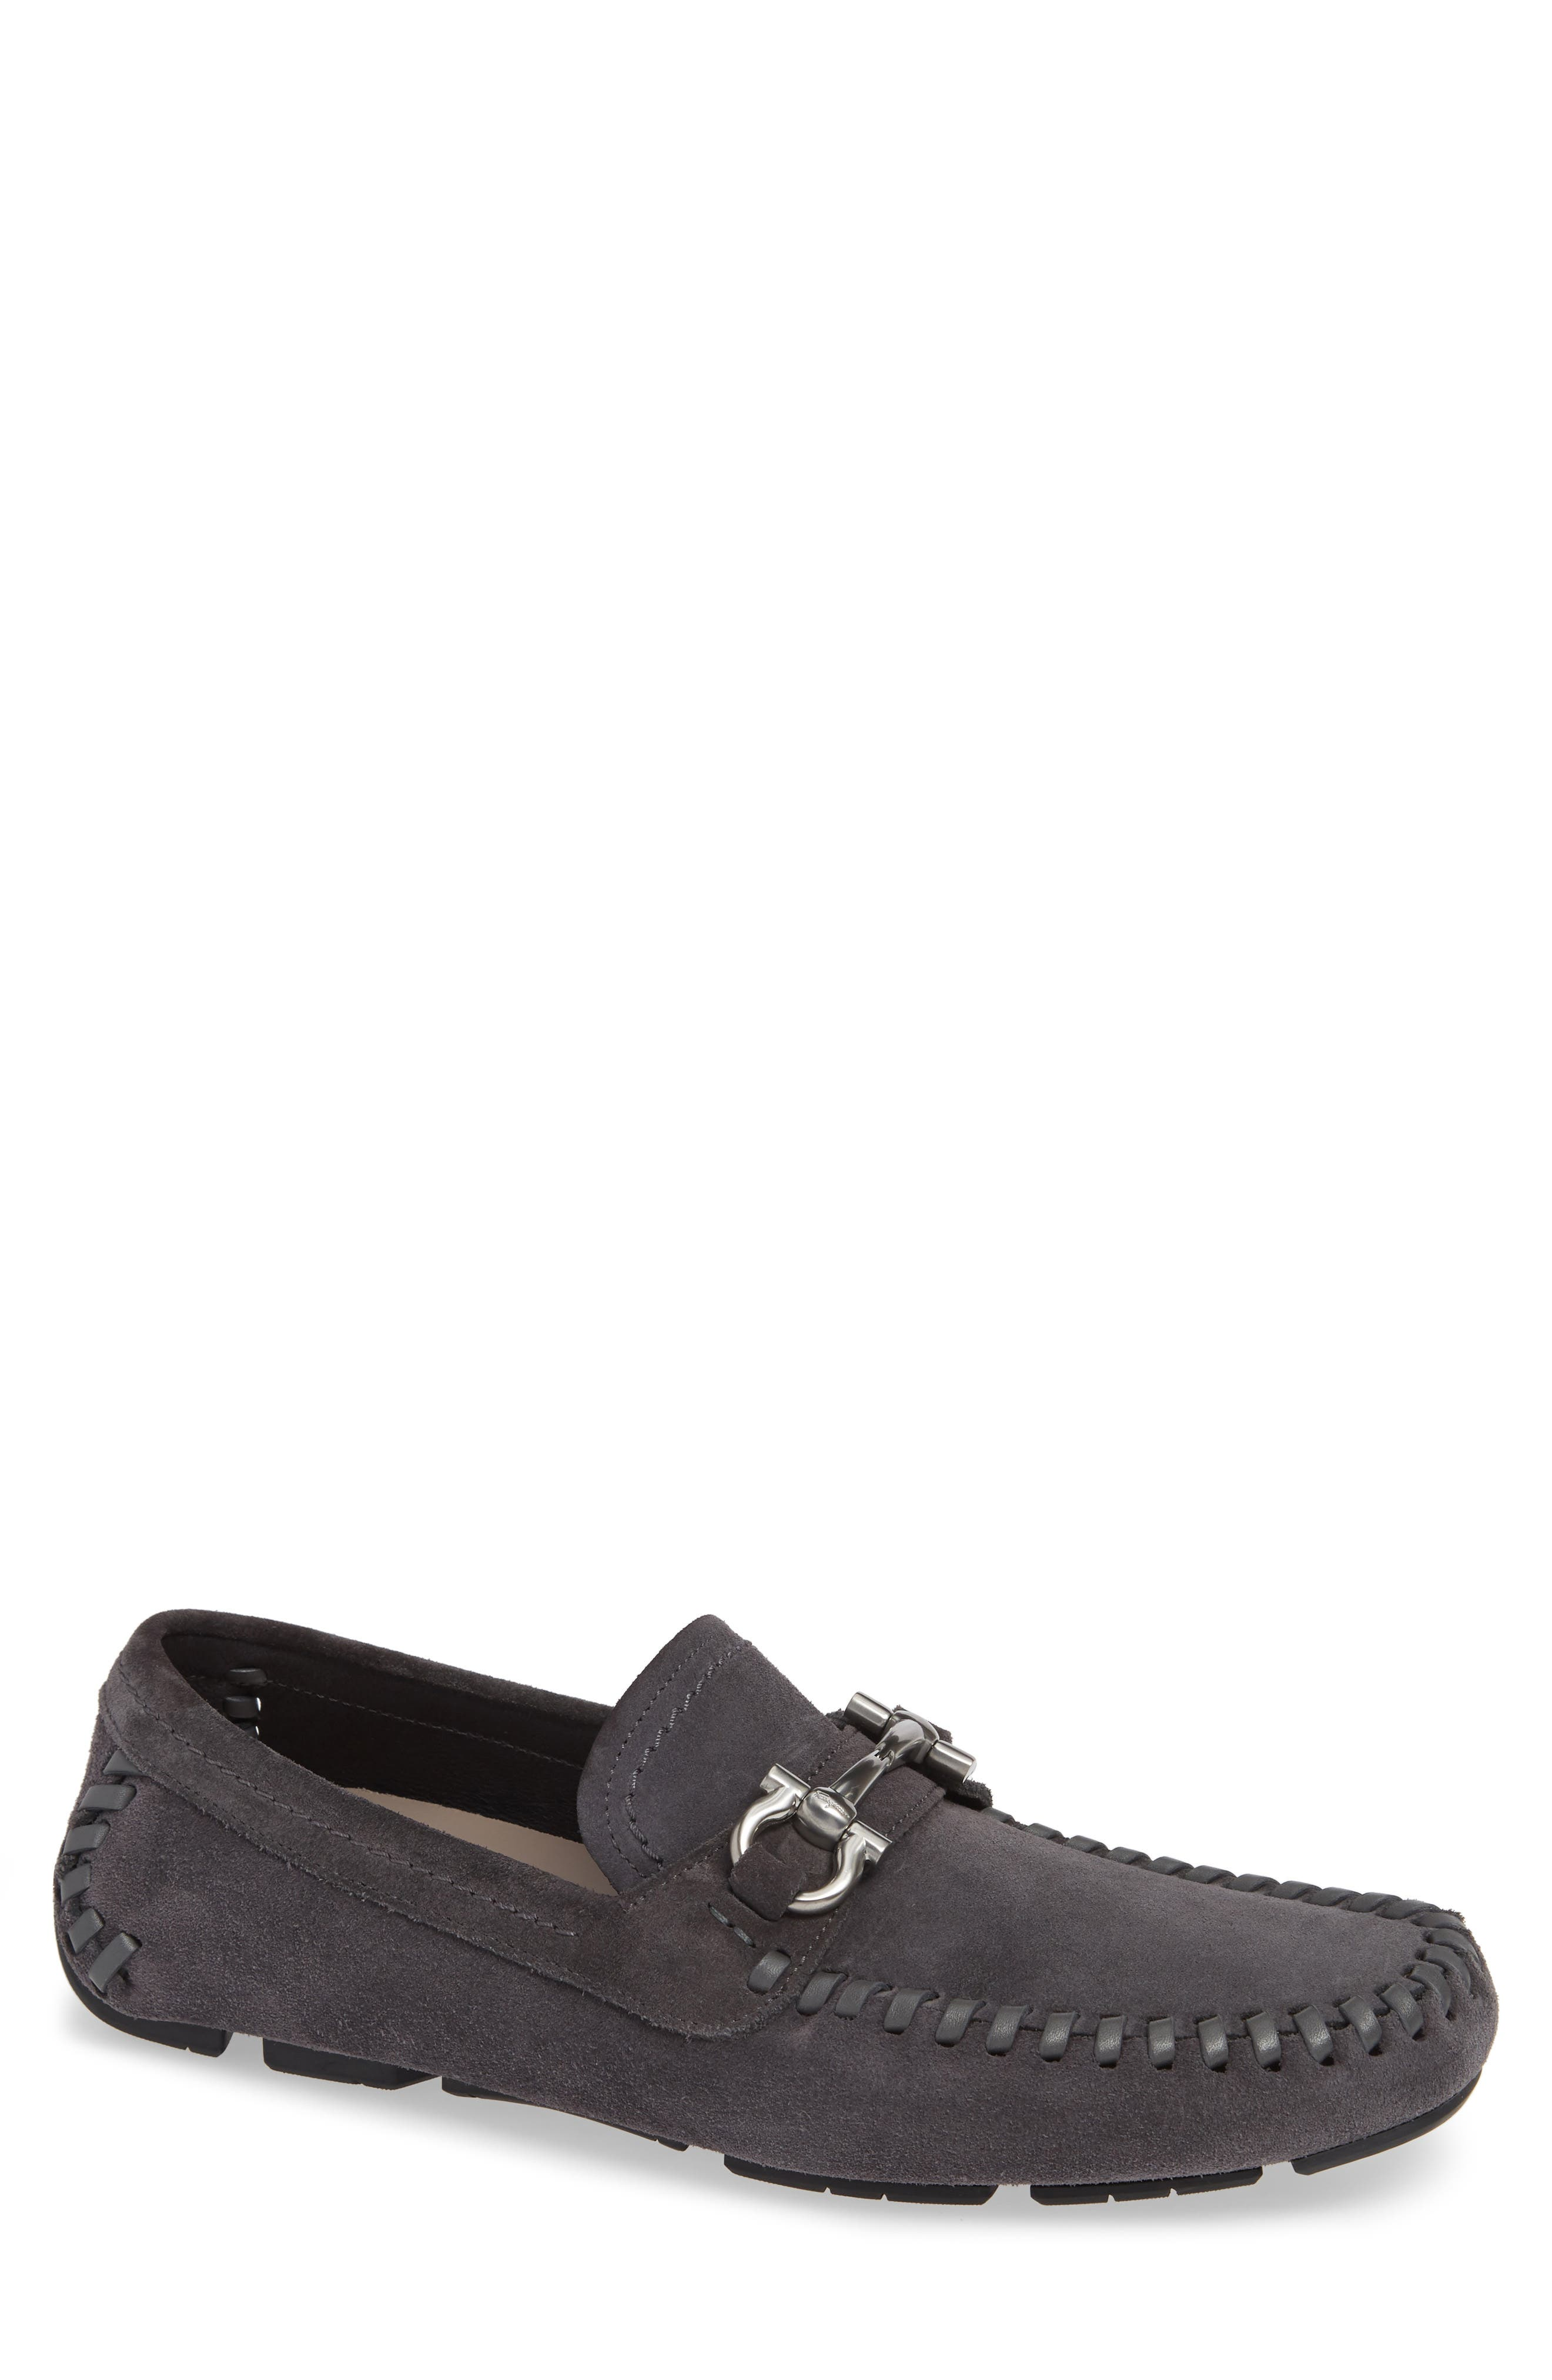 SALVATORE FERRAGAMO Parigi Bit Driving Moccasin, Main, color, ASFALTO NERO